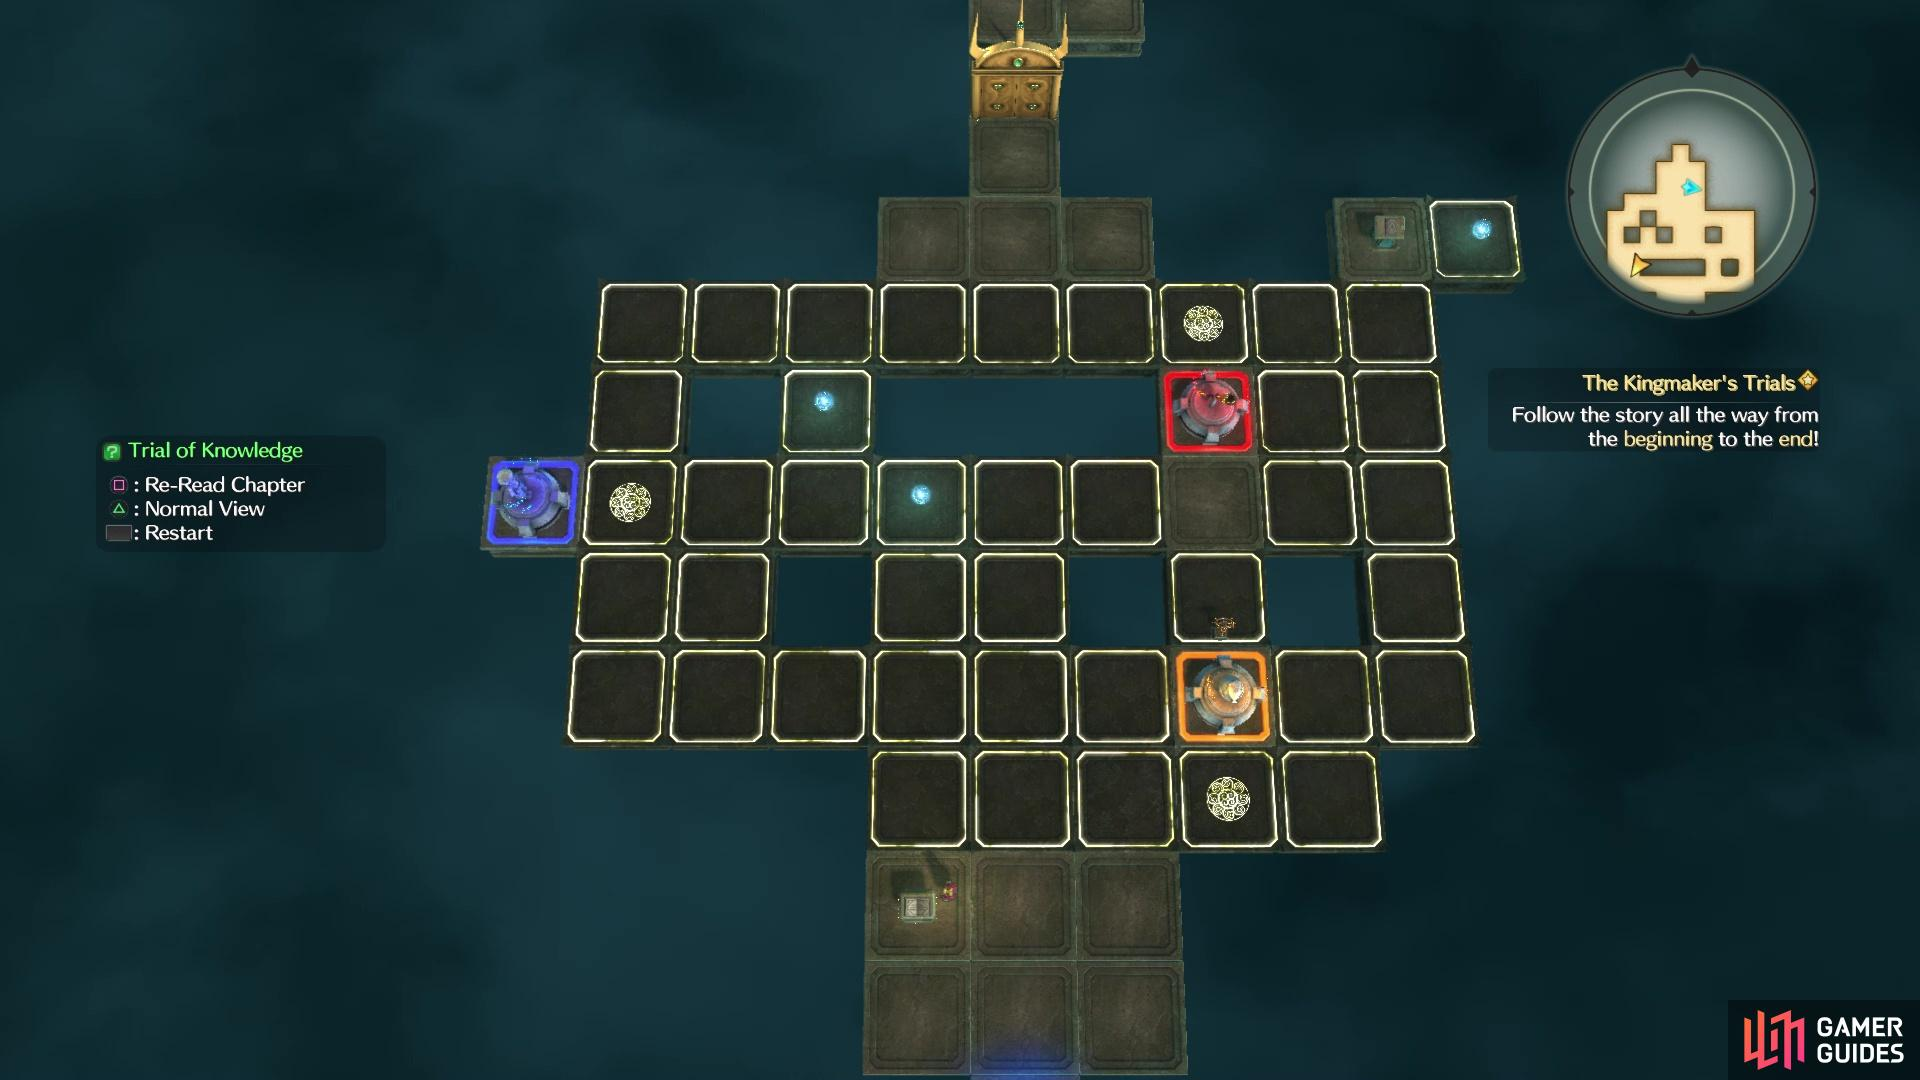 Get a bird's eye view of the puzzle with the Triangle button